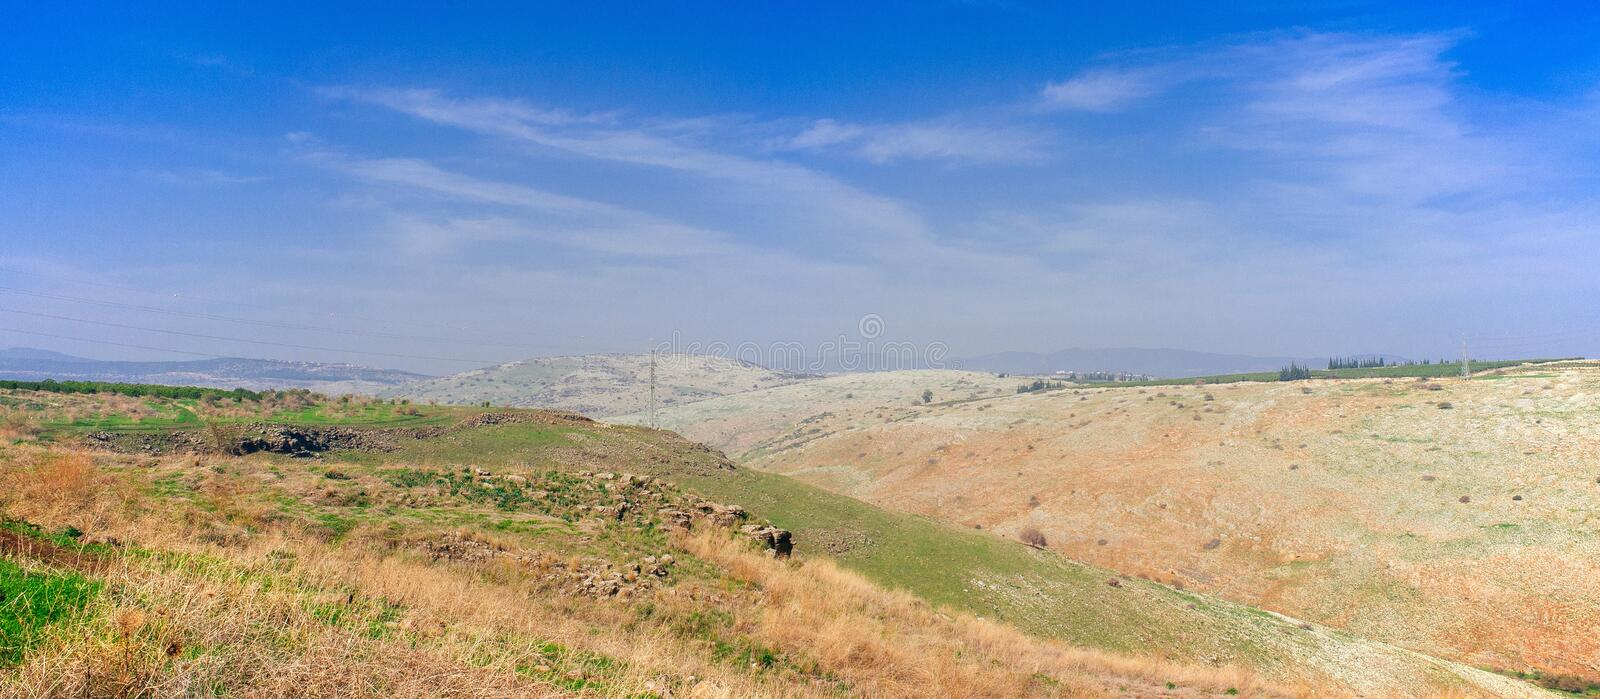 Download Holyland series-Mt. Arbel stock image. Image of mountains - 36992091